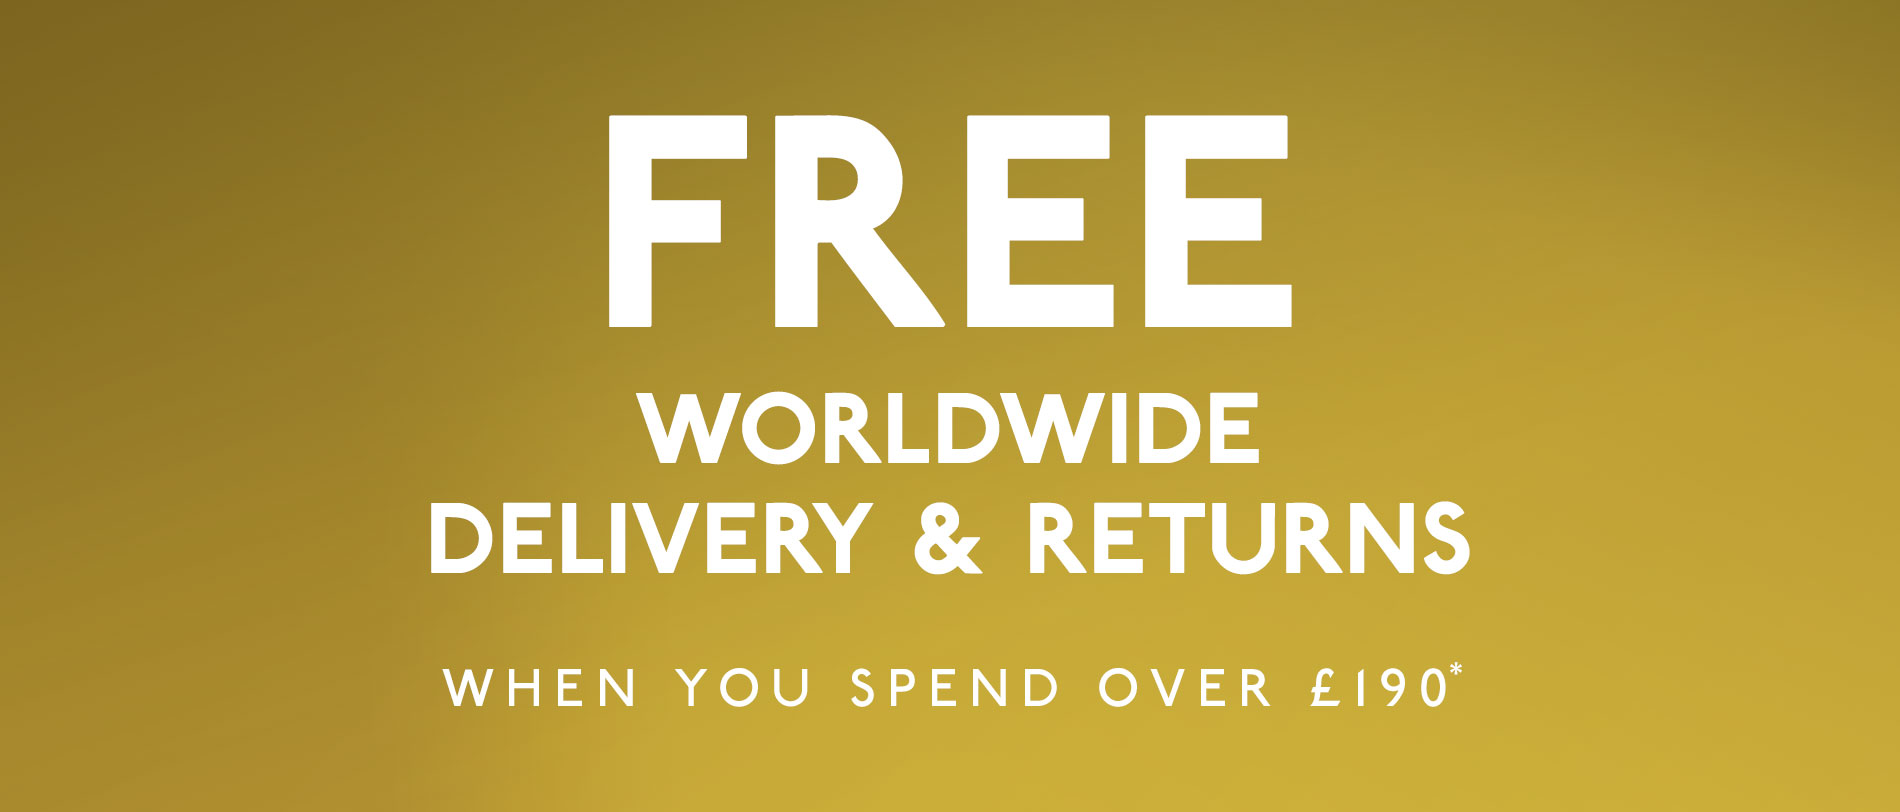 Free worldwide delivery and returns over £190